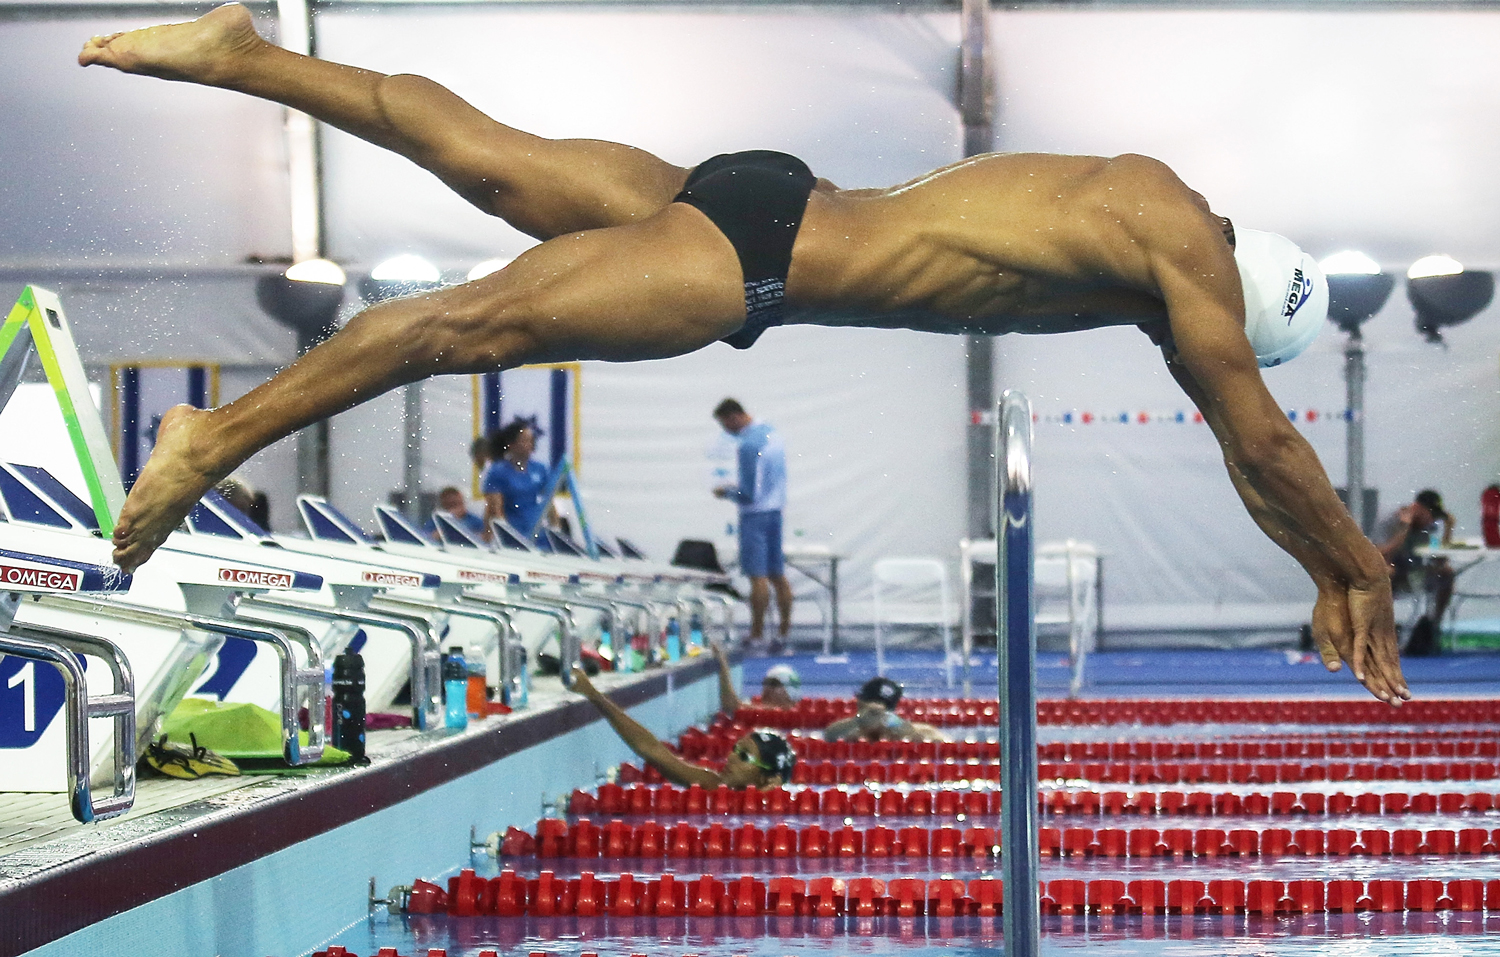 Rami Anis, an Olympic refugee team swimmer from Syria, dives while training at the Olympic Aquatics Stadium ahead of the opening ceremonies in Rio de Janeiro on July 28, 2016.